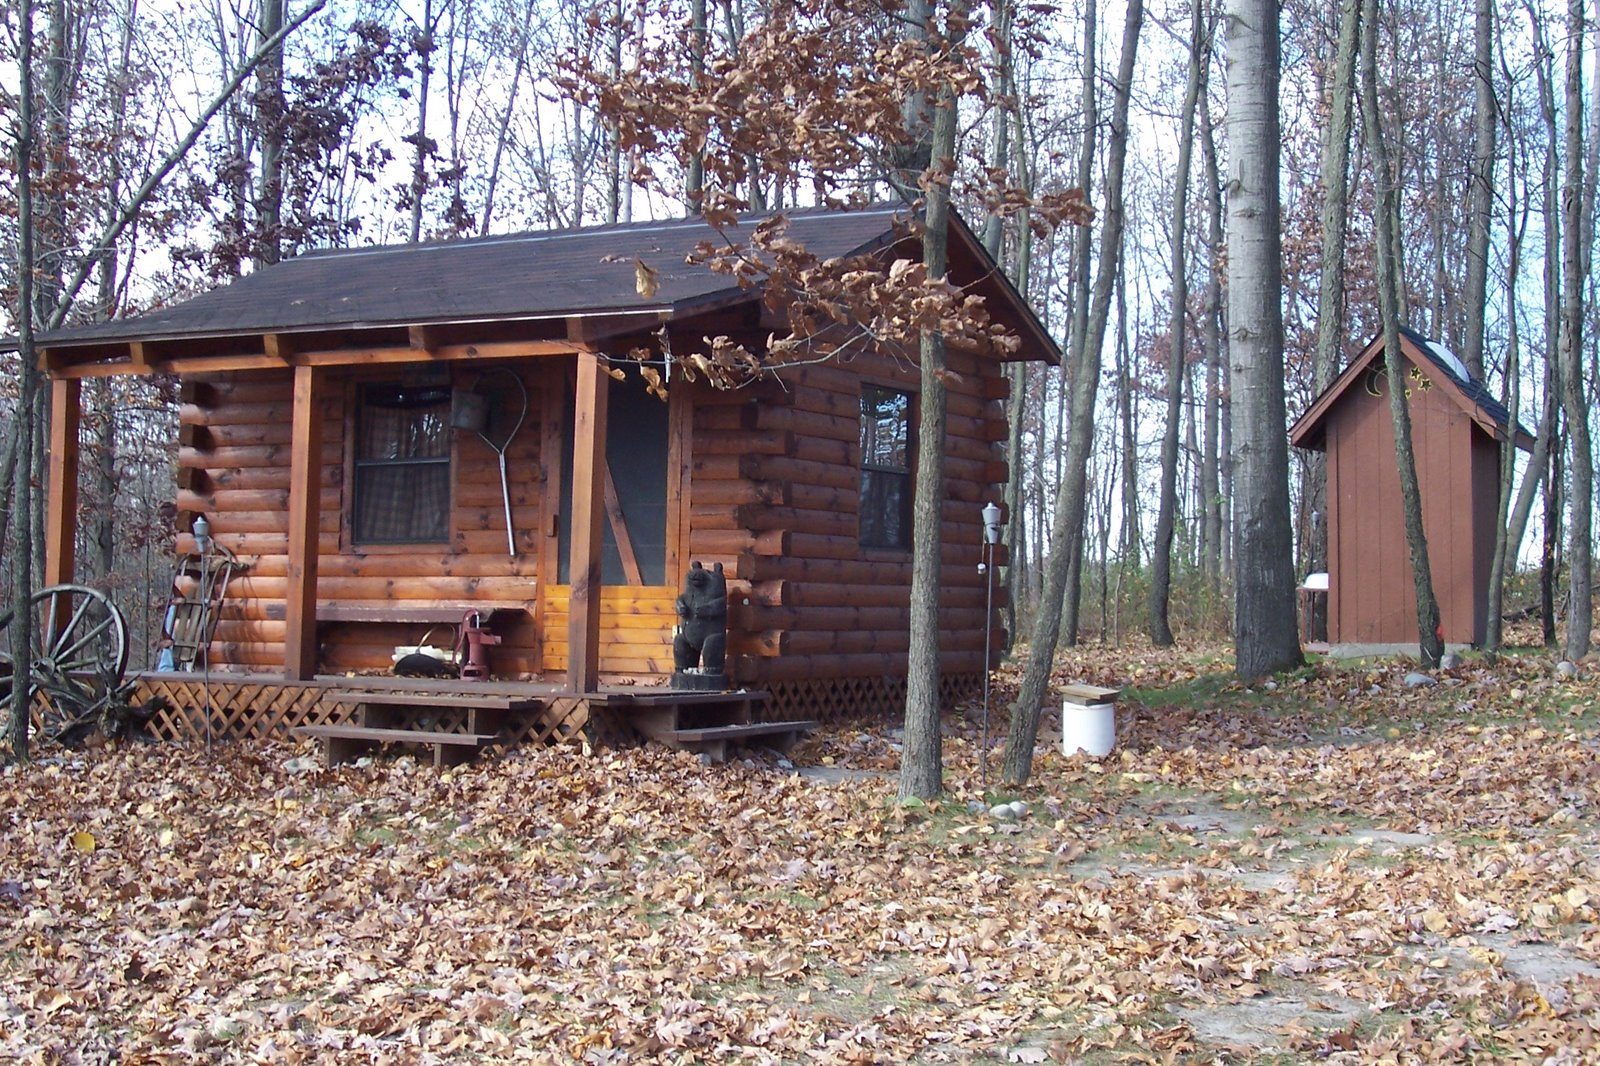 The Primitive Cabin